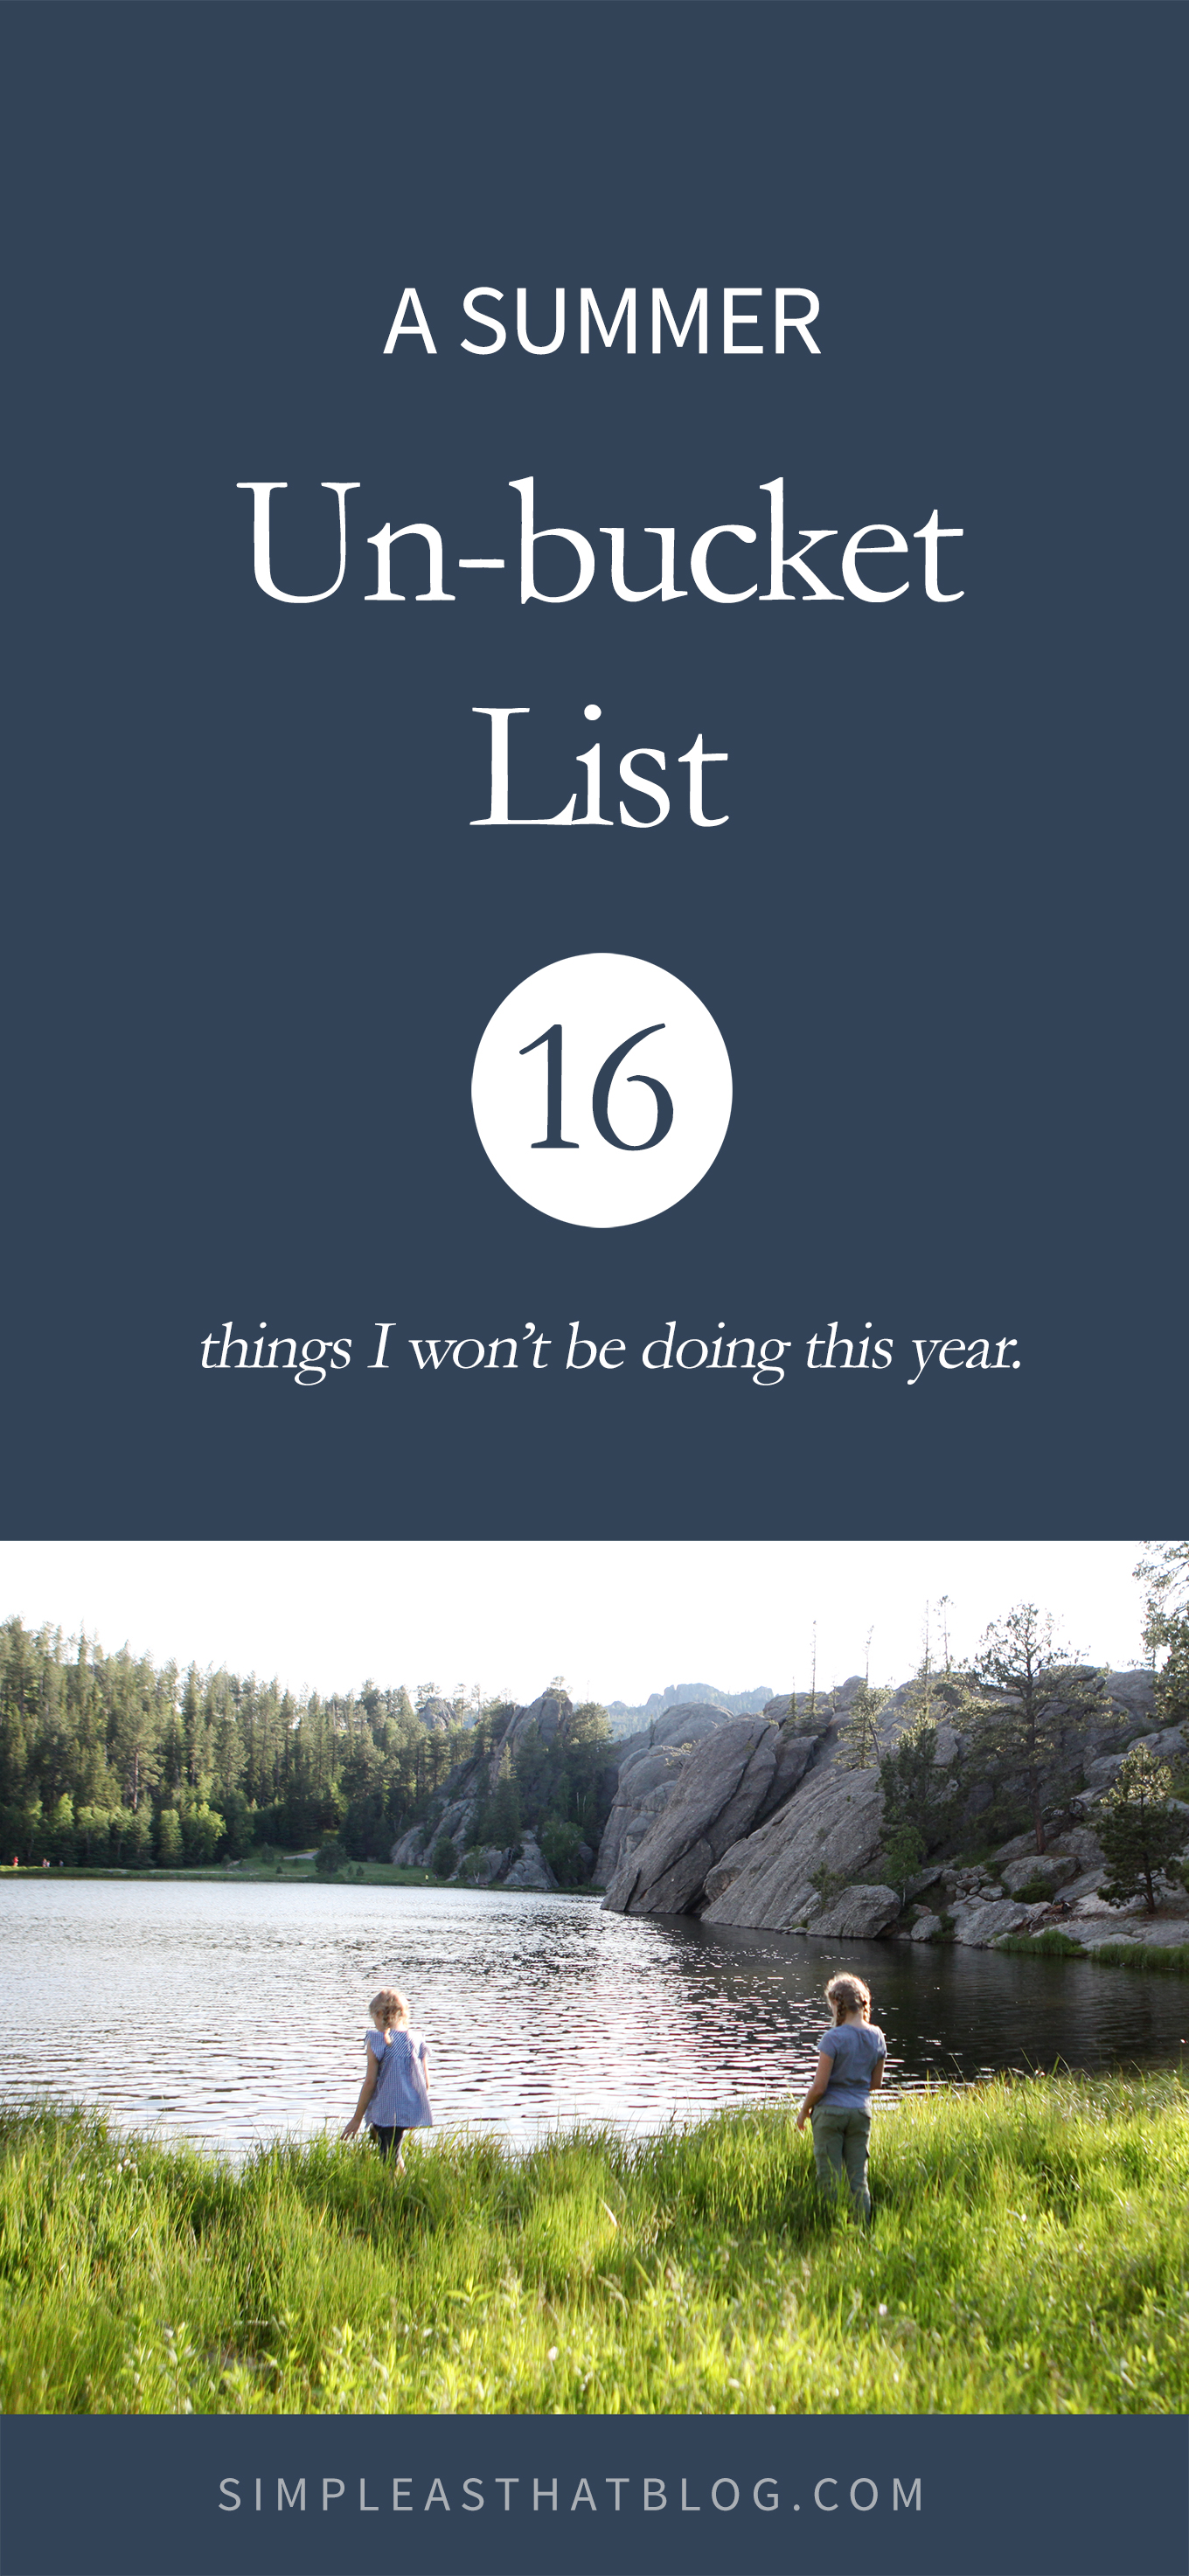 """Sometimes the best moments are the ones you didn't plan at all."" A summer un-bucket list: 16 things I WON'T be doing this year."